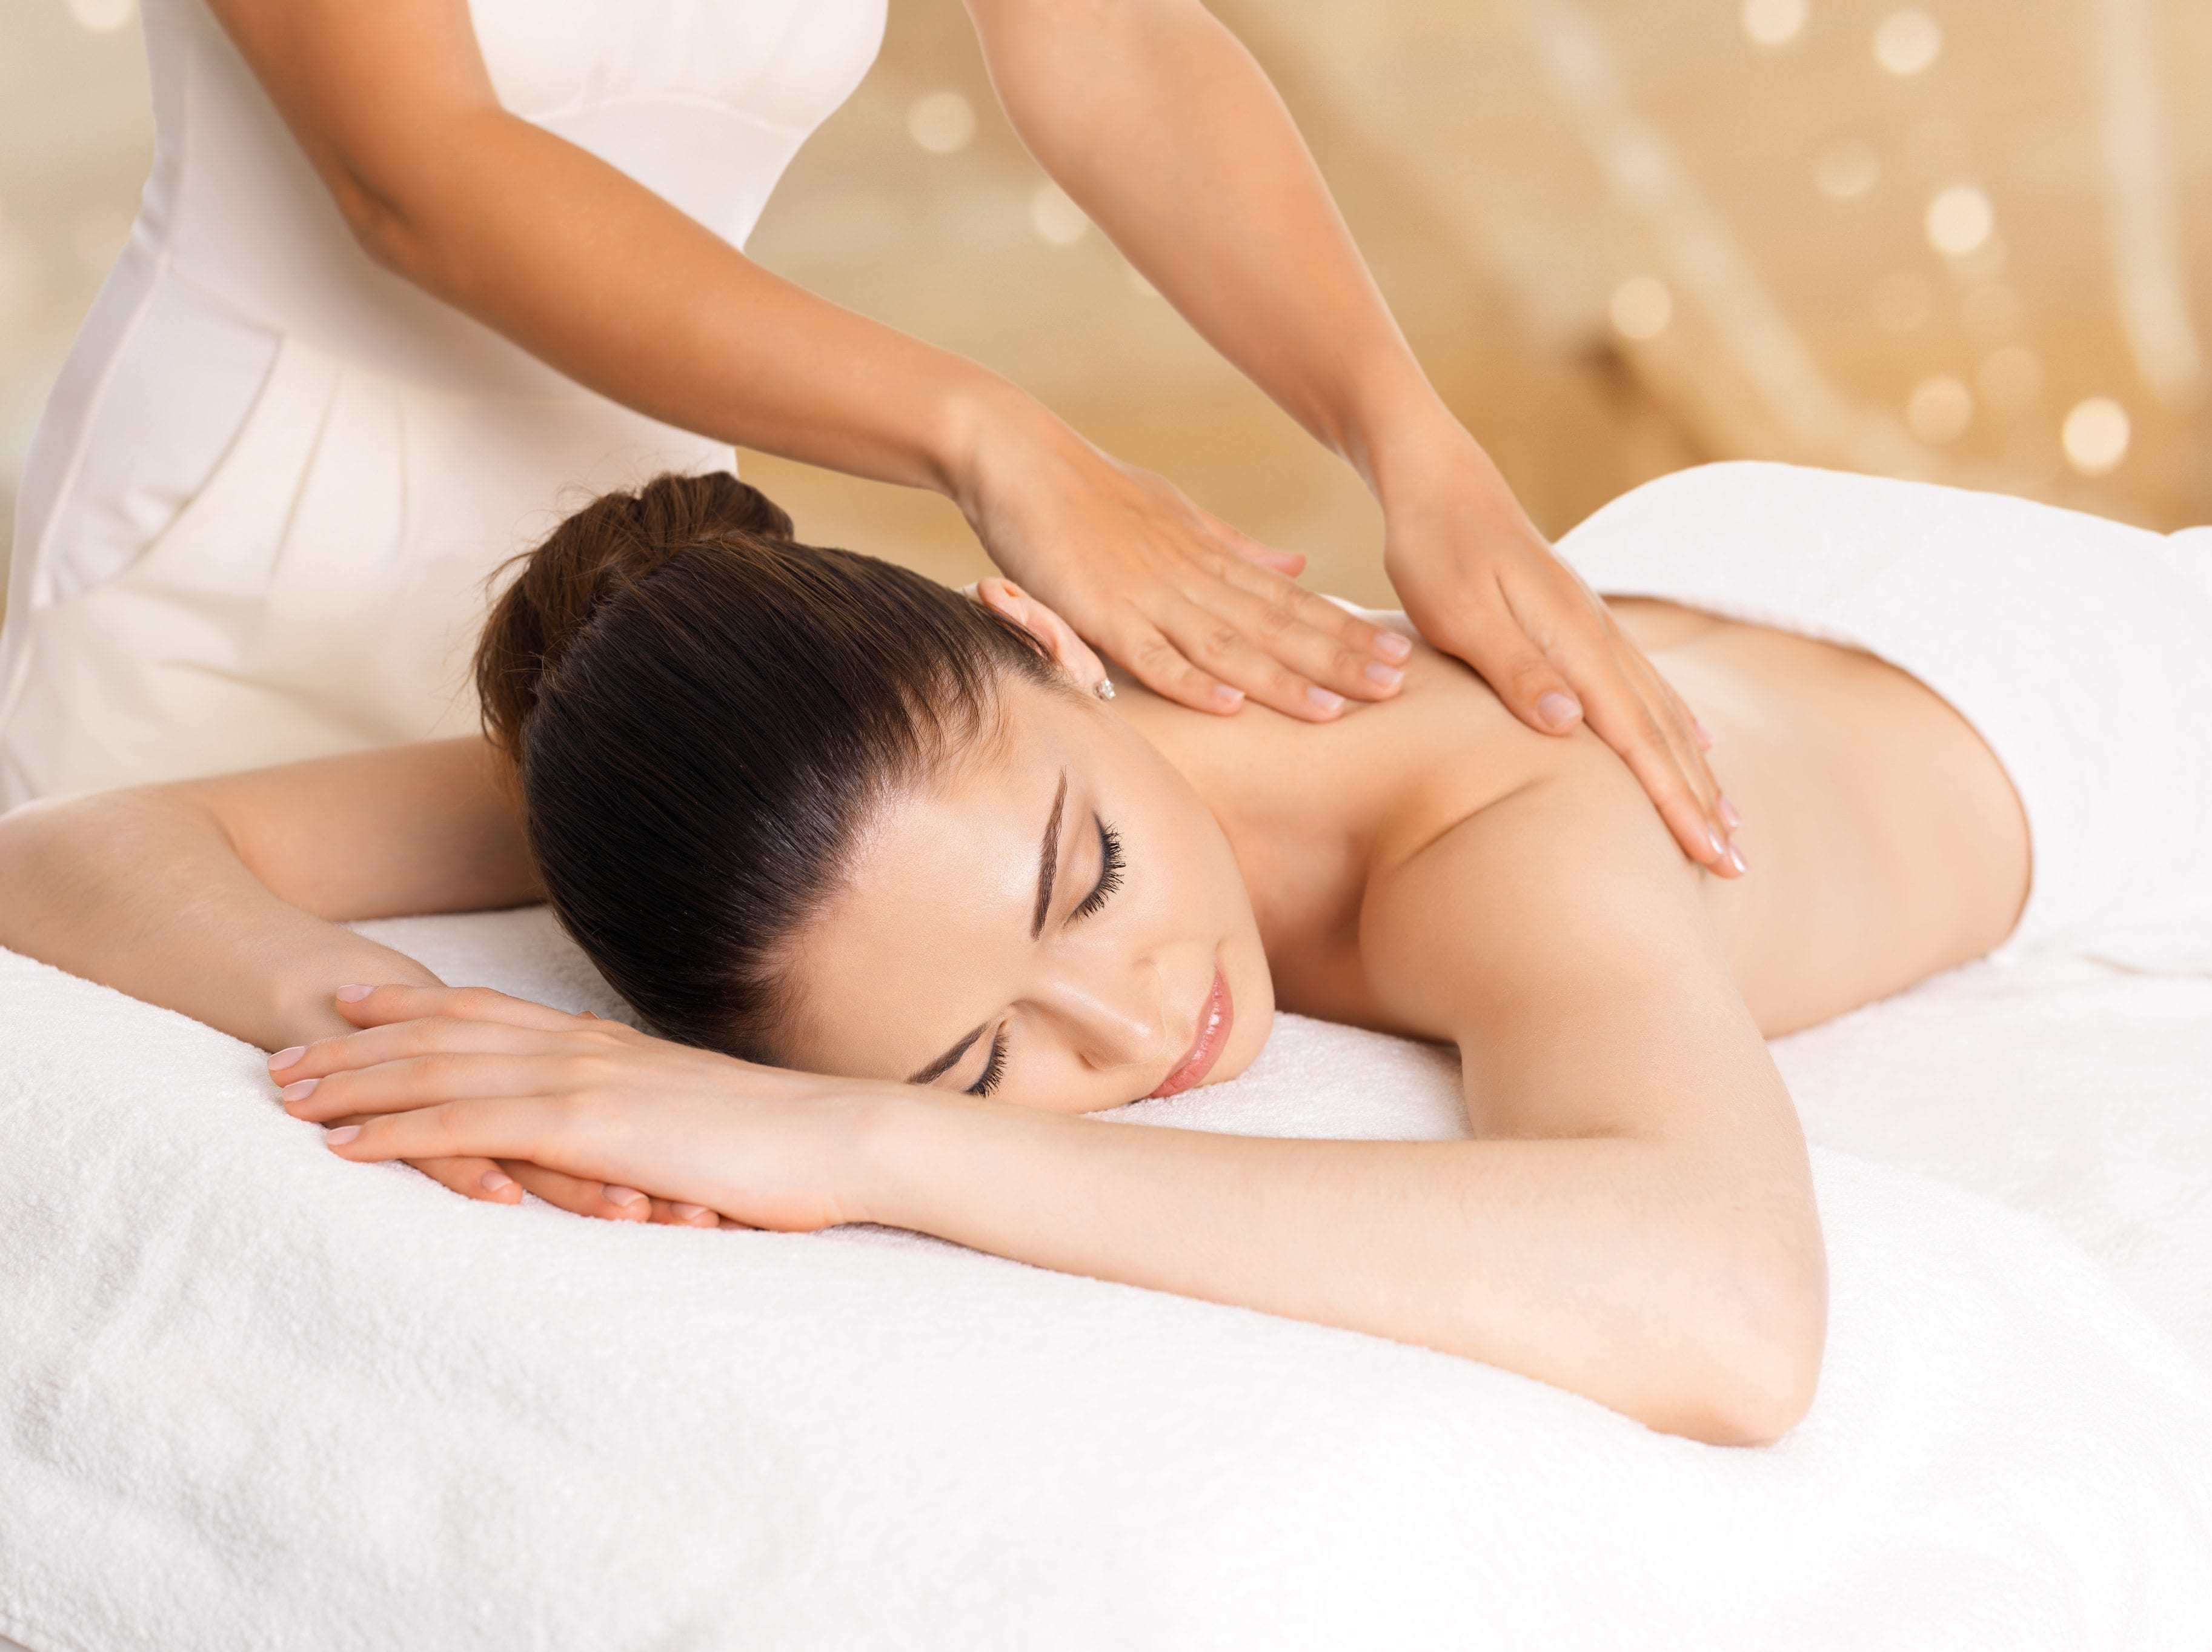 NVQ Level 3 Beauty Courses  VTCT Level 3 Beauty Therapy Diploma